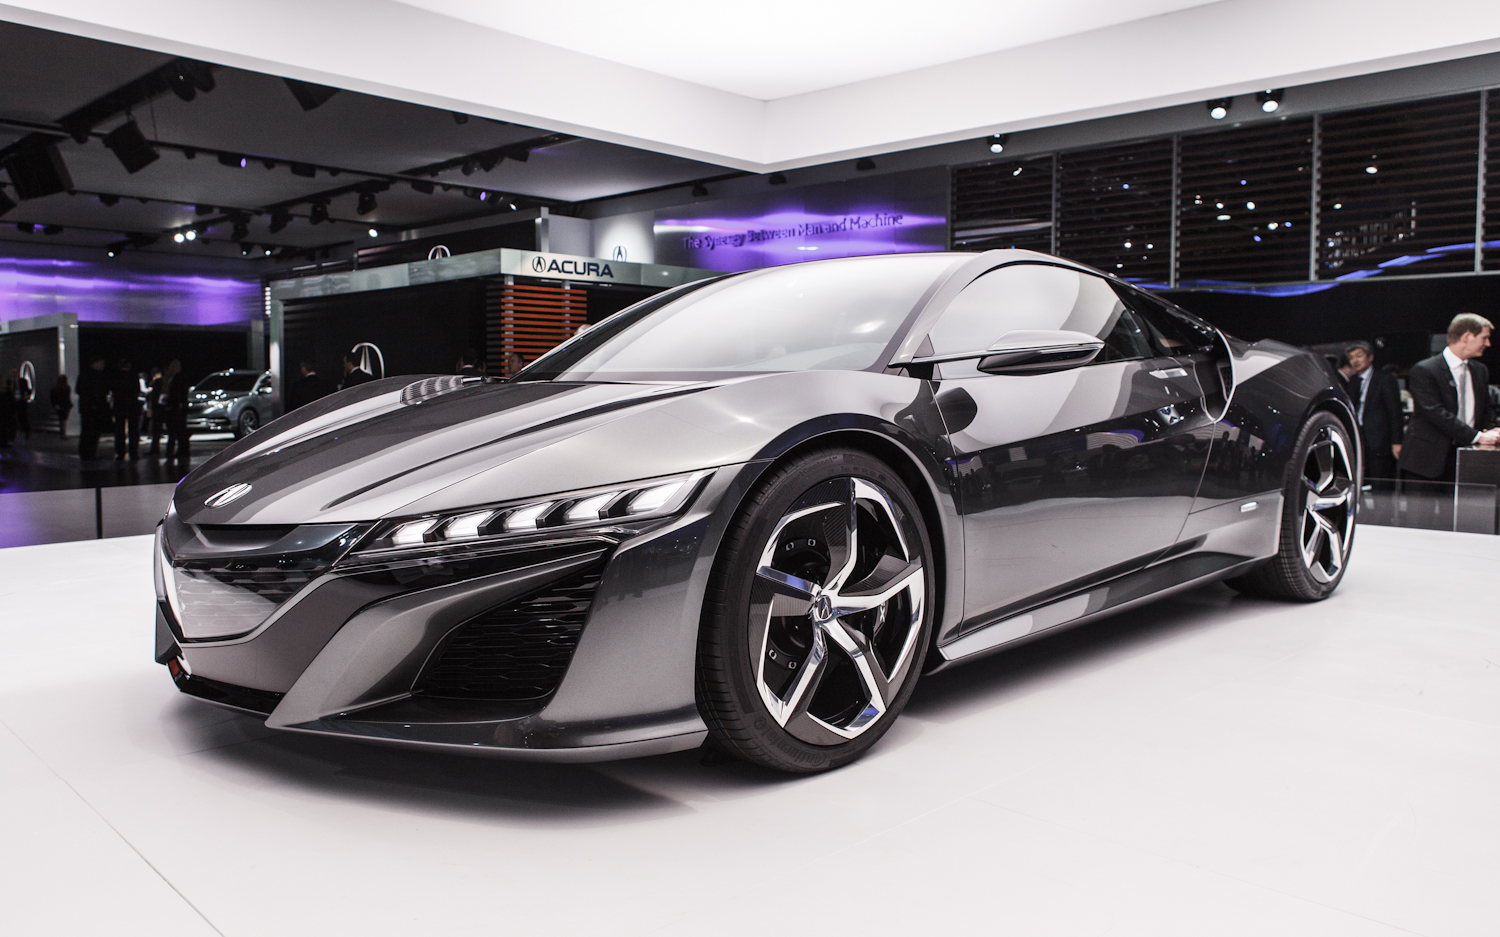 2019 Acura NSX Concept photo - 1